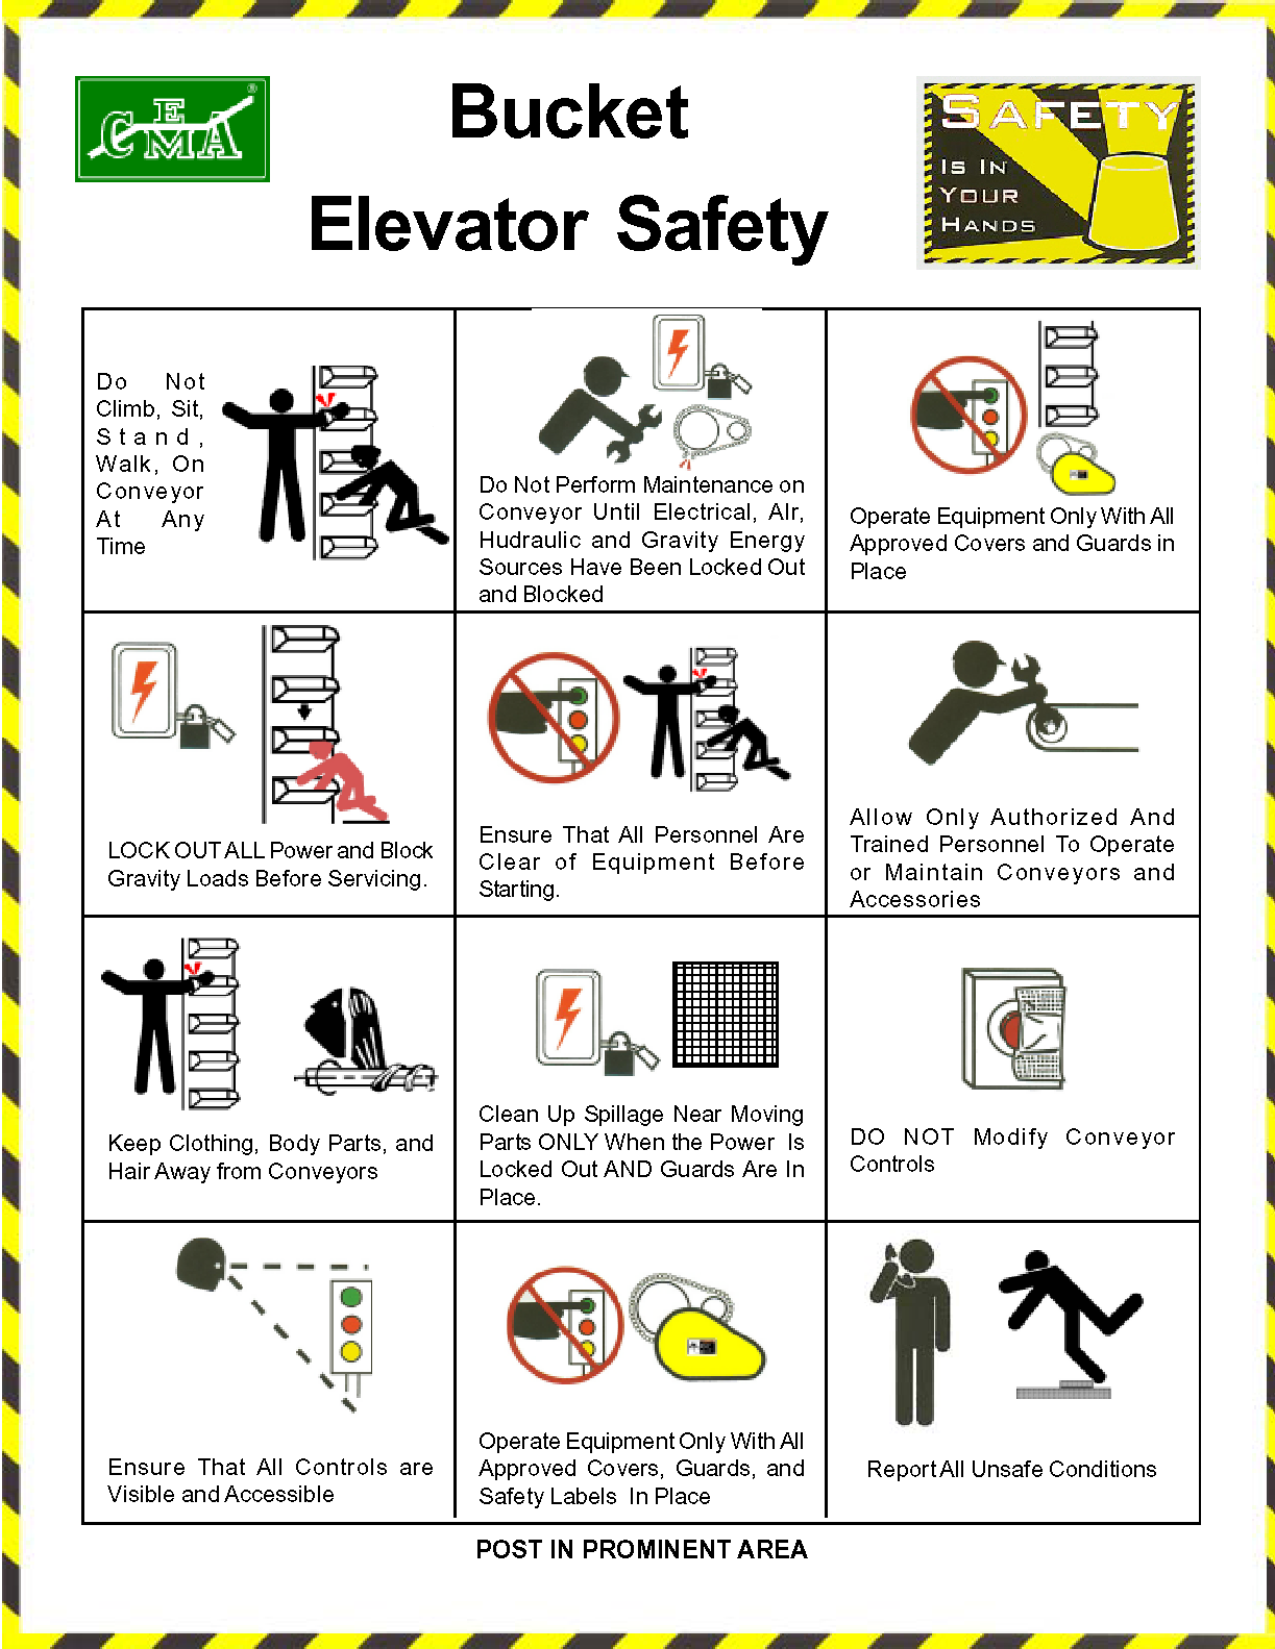 Design poster k3 - Bucket Elevator Safety Poster 2003 Png